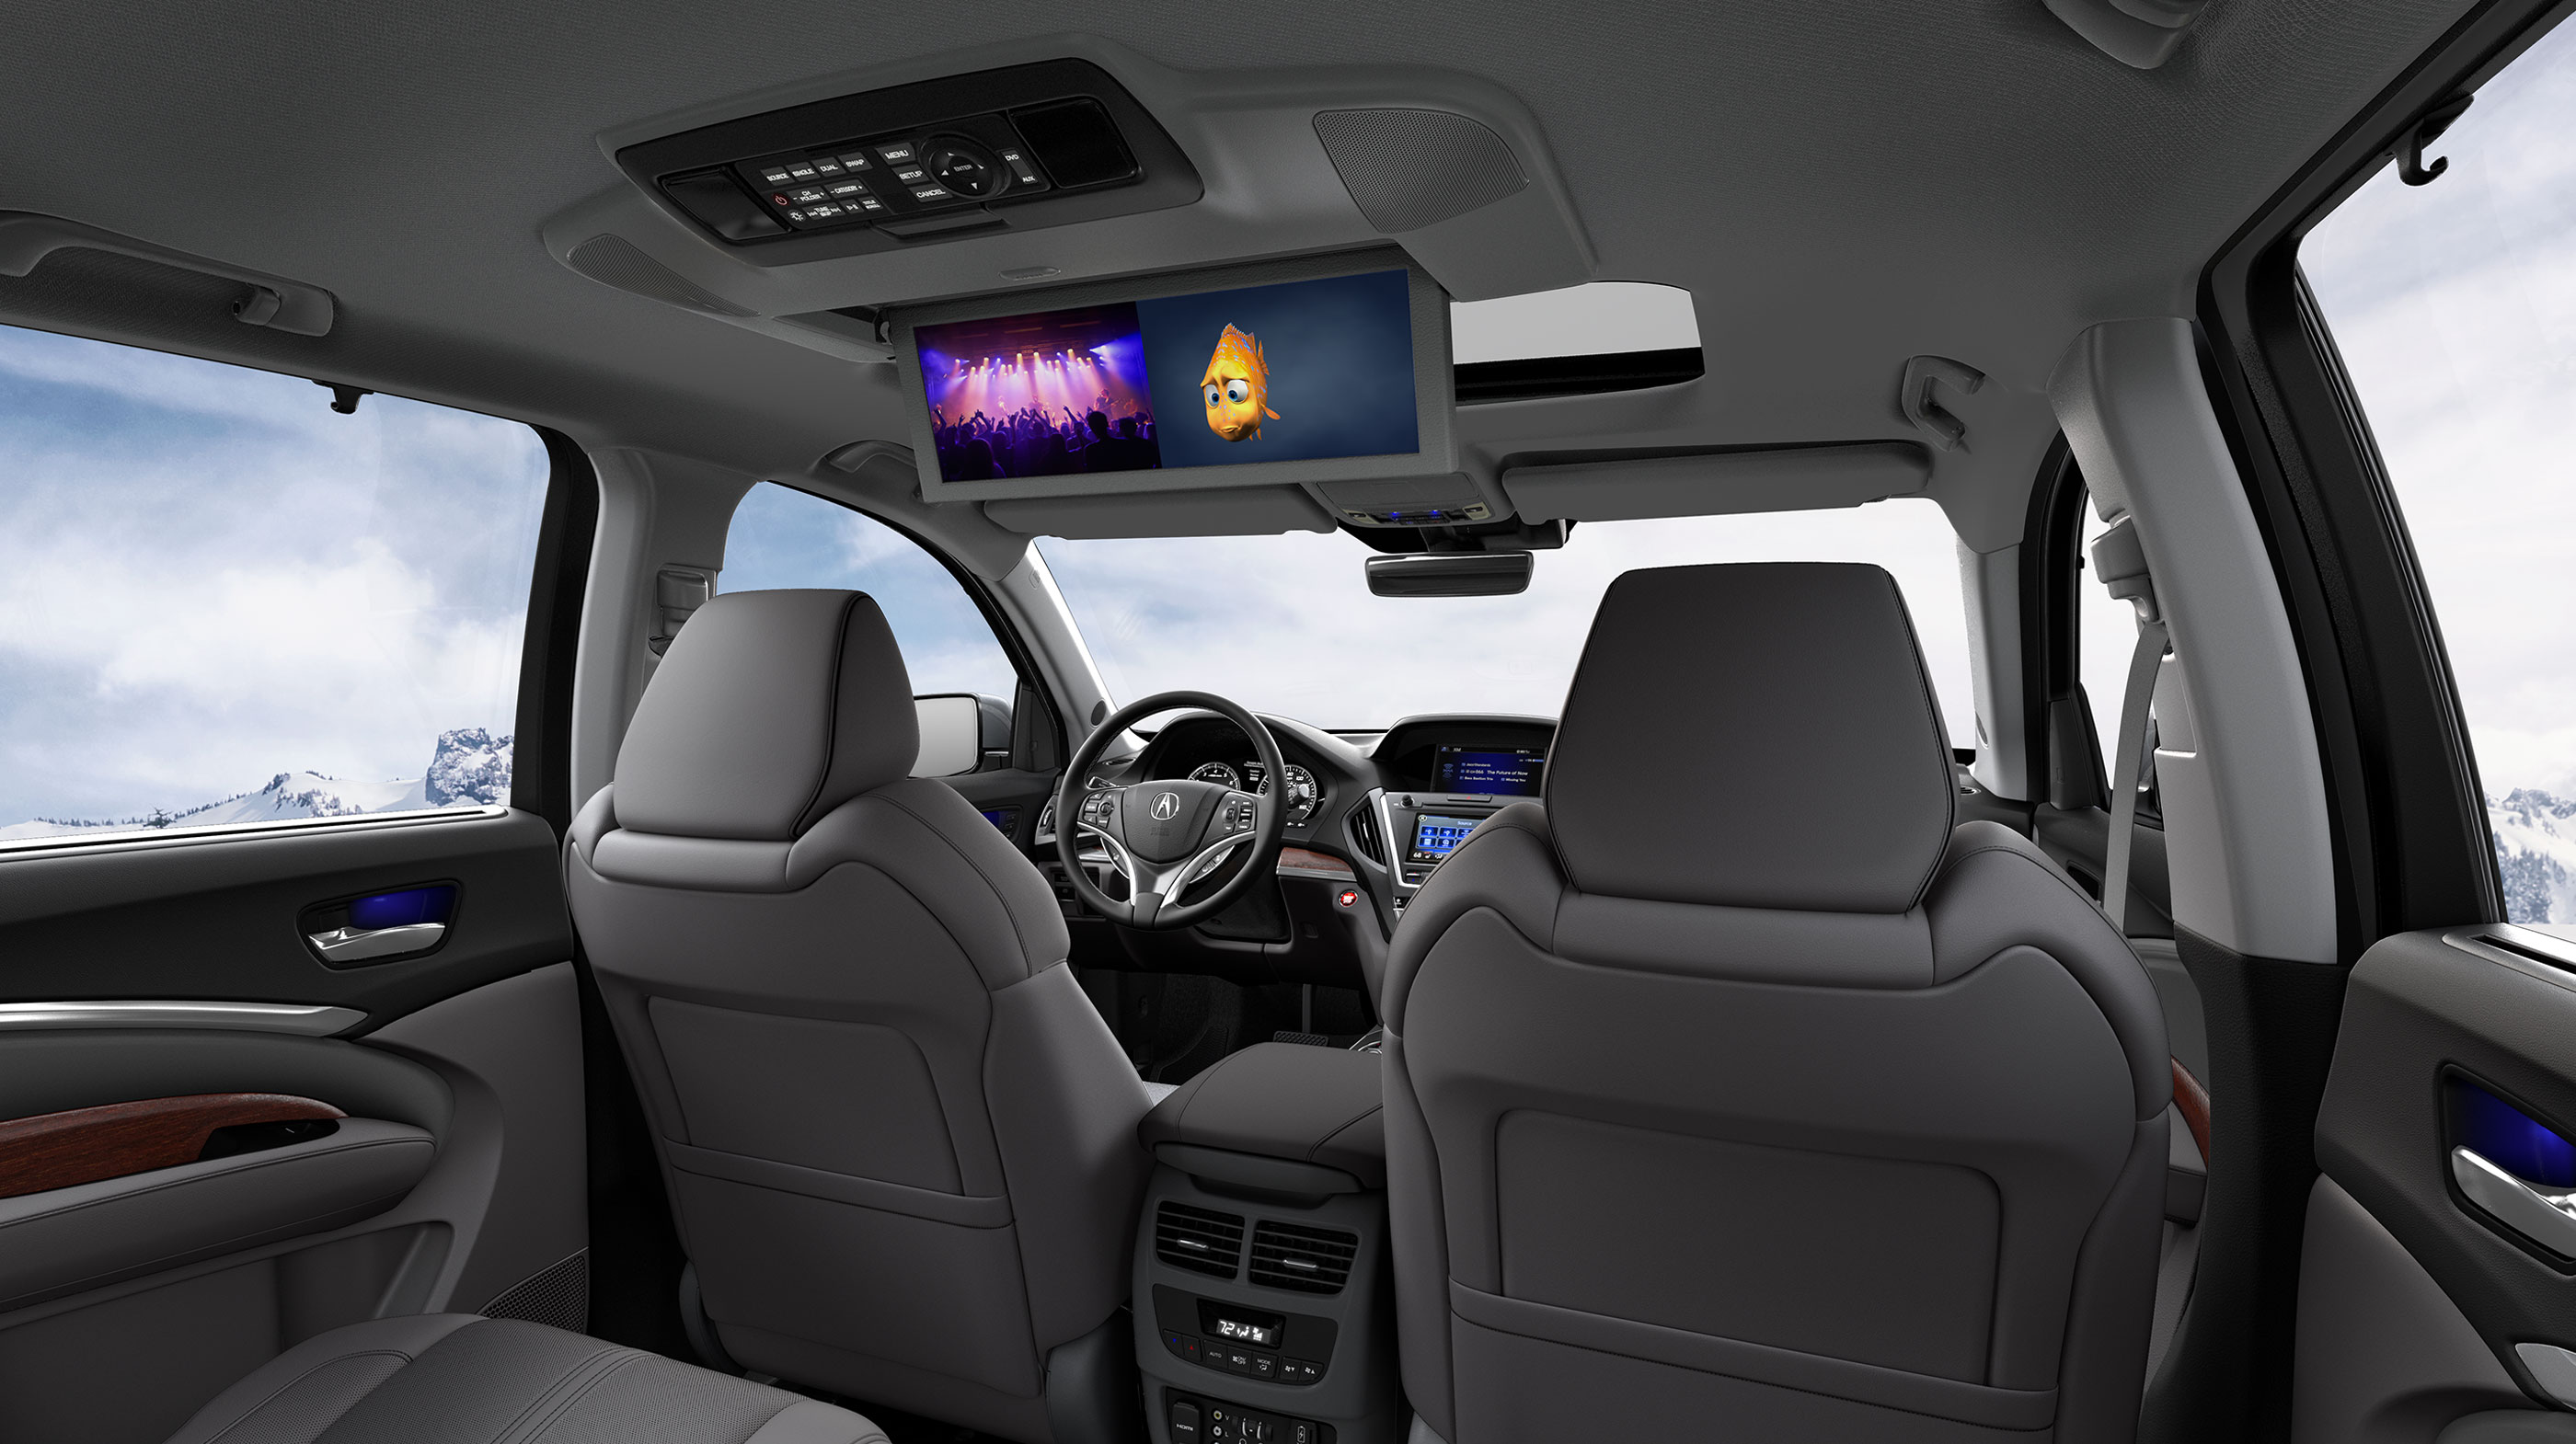 suv package composite research white entertainment pearl lease w sh large awd diamond advance acura and groovecar mdx